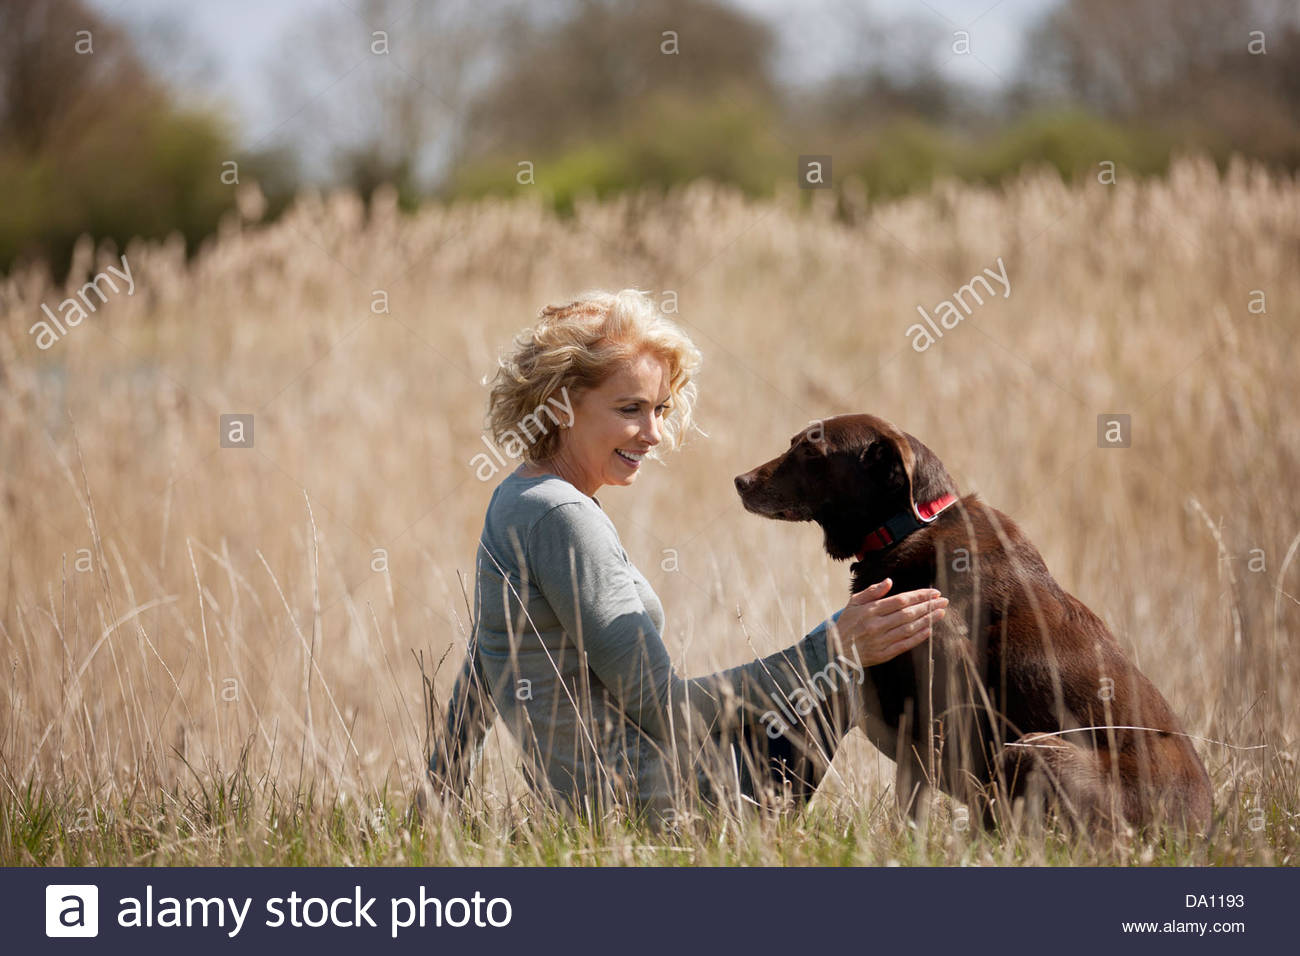 A mature woman sitting on the grass stroking her dog - Stock Image